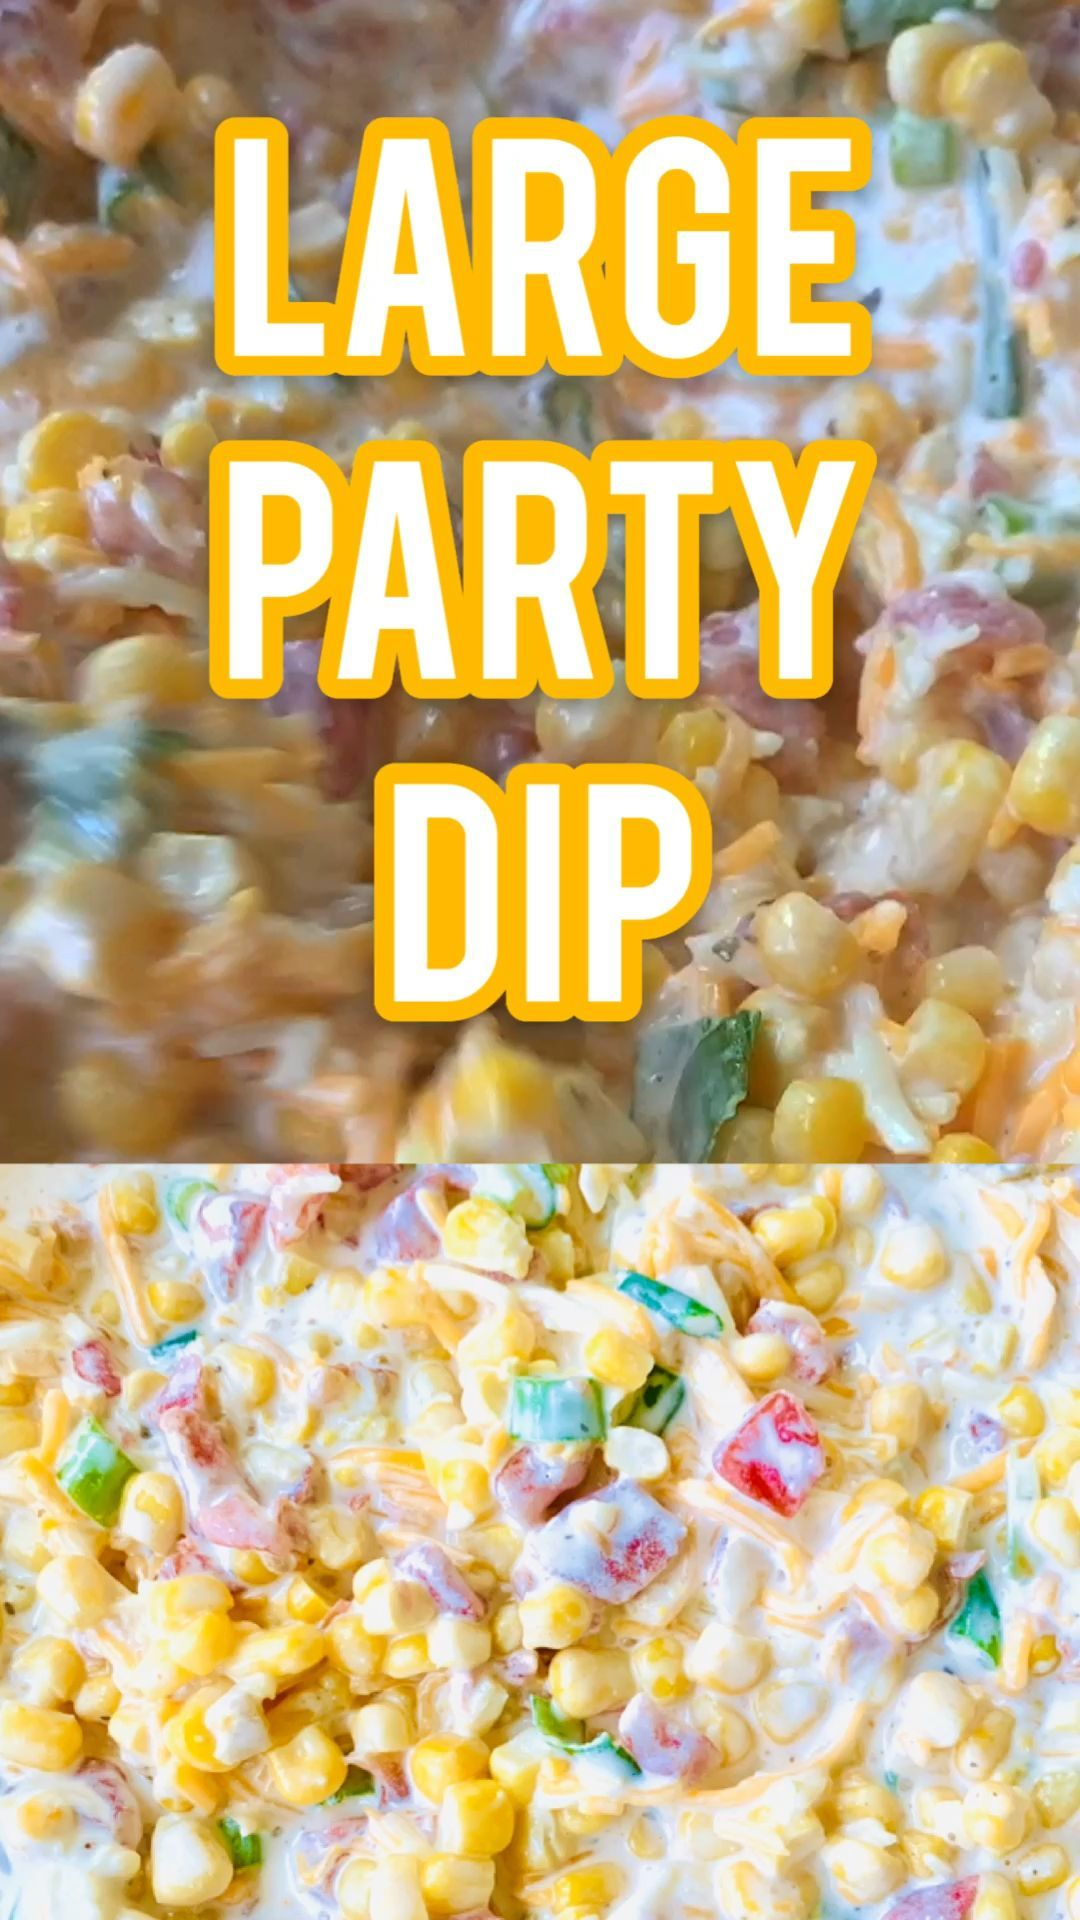 Fiesta Corn Dip With Rotel And Sour Cream Is A Delicious Large Party Dip Where You And Your Party Guests Wi In 2020 Dip Recipes Easy Corn Dip Recipes Cold Dip Recipes